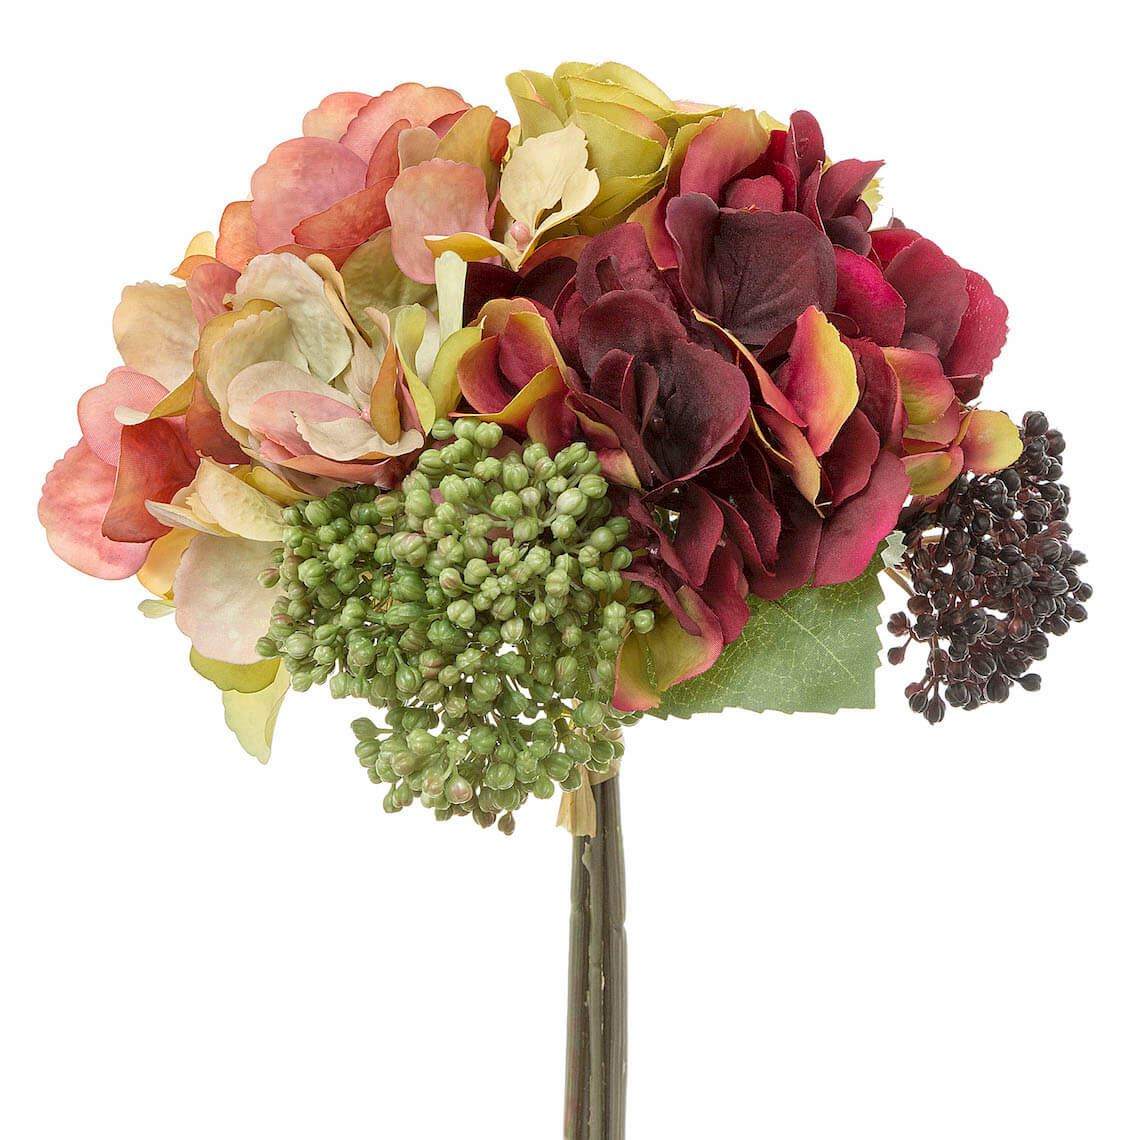 Hydrangea Bouquet Size W 20cm x D 20cm x H 28cm in Rose Plastic/Polyester/Wire Freedom by Freedom, a Plants for sale on Style Sourcebook